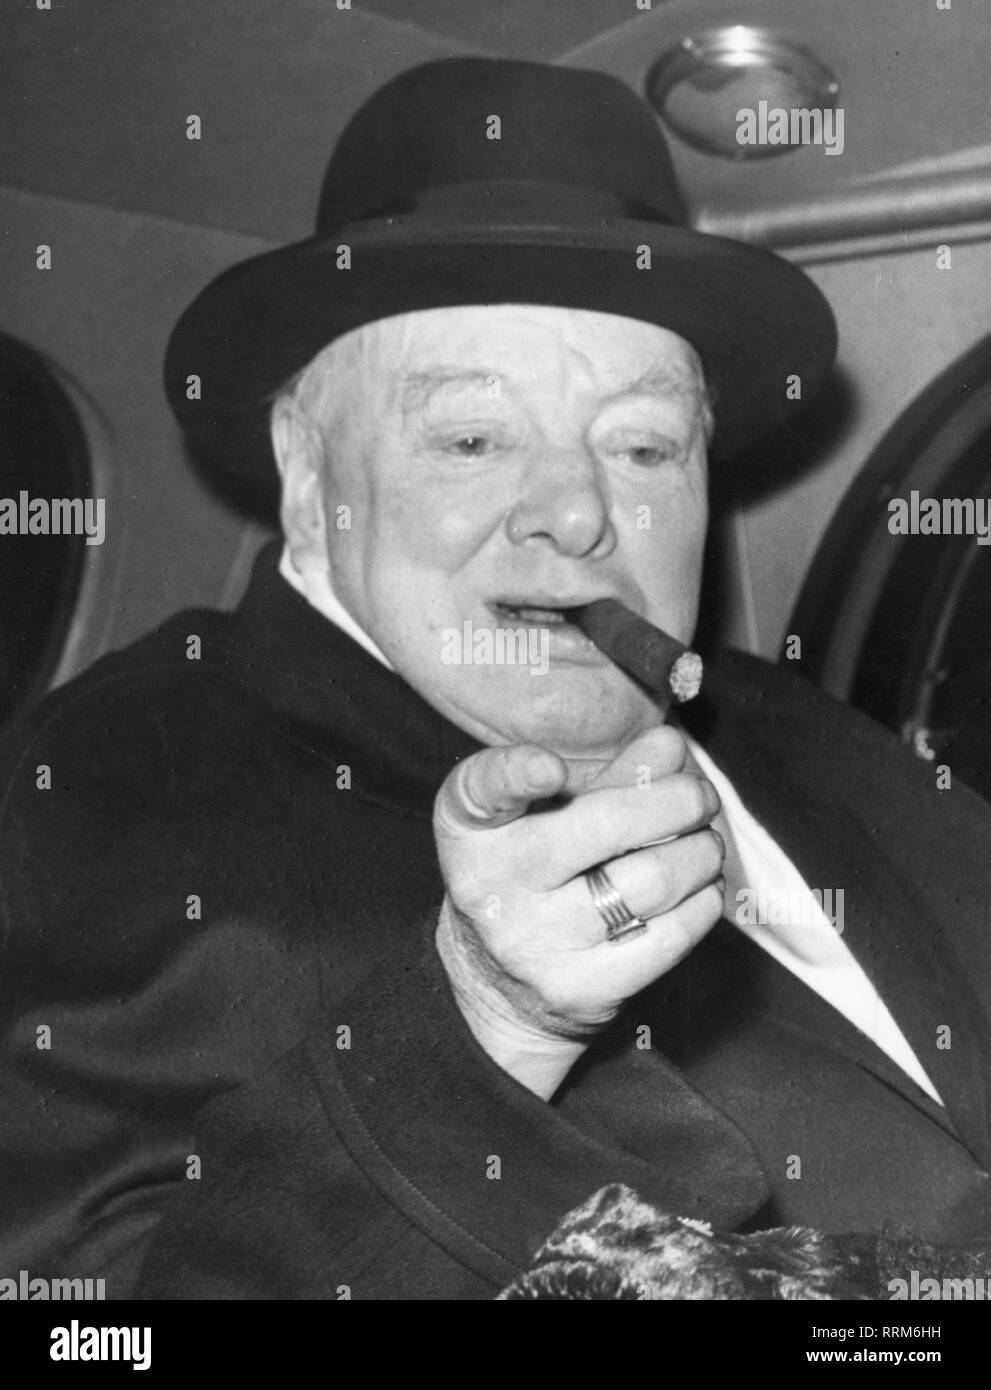 Churchill, Winston, 30.11.1874 - 24.1.1965, British politician (Cons.), portrait, in the car, late 1950s, Additional-Rights-Clearance-Info-Not-Available - Stock Image